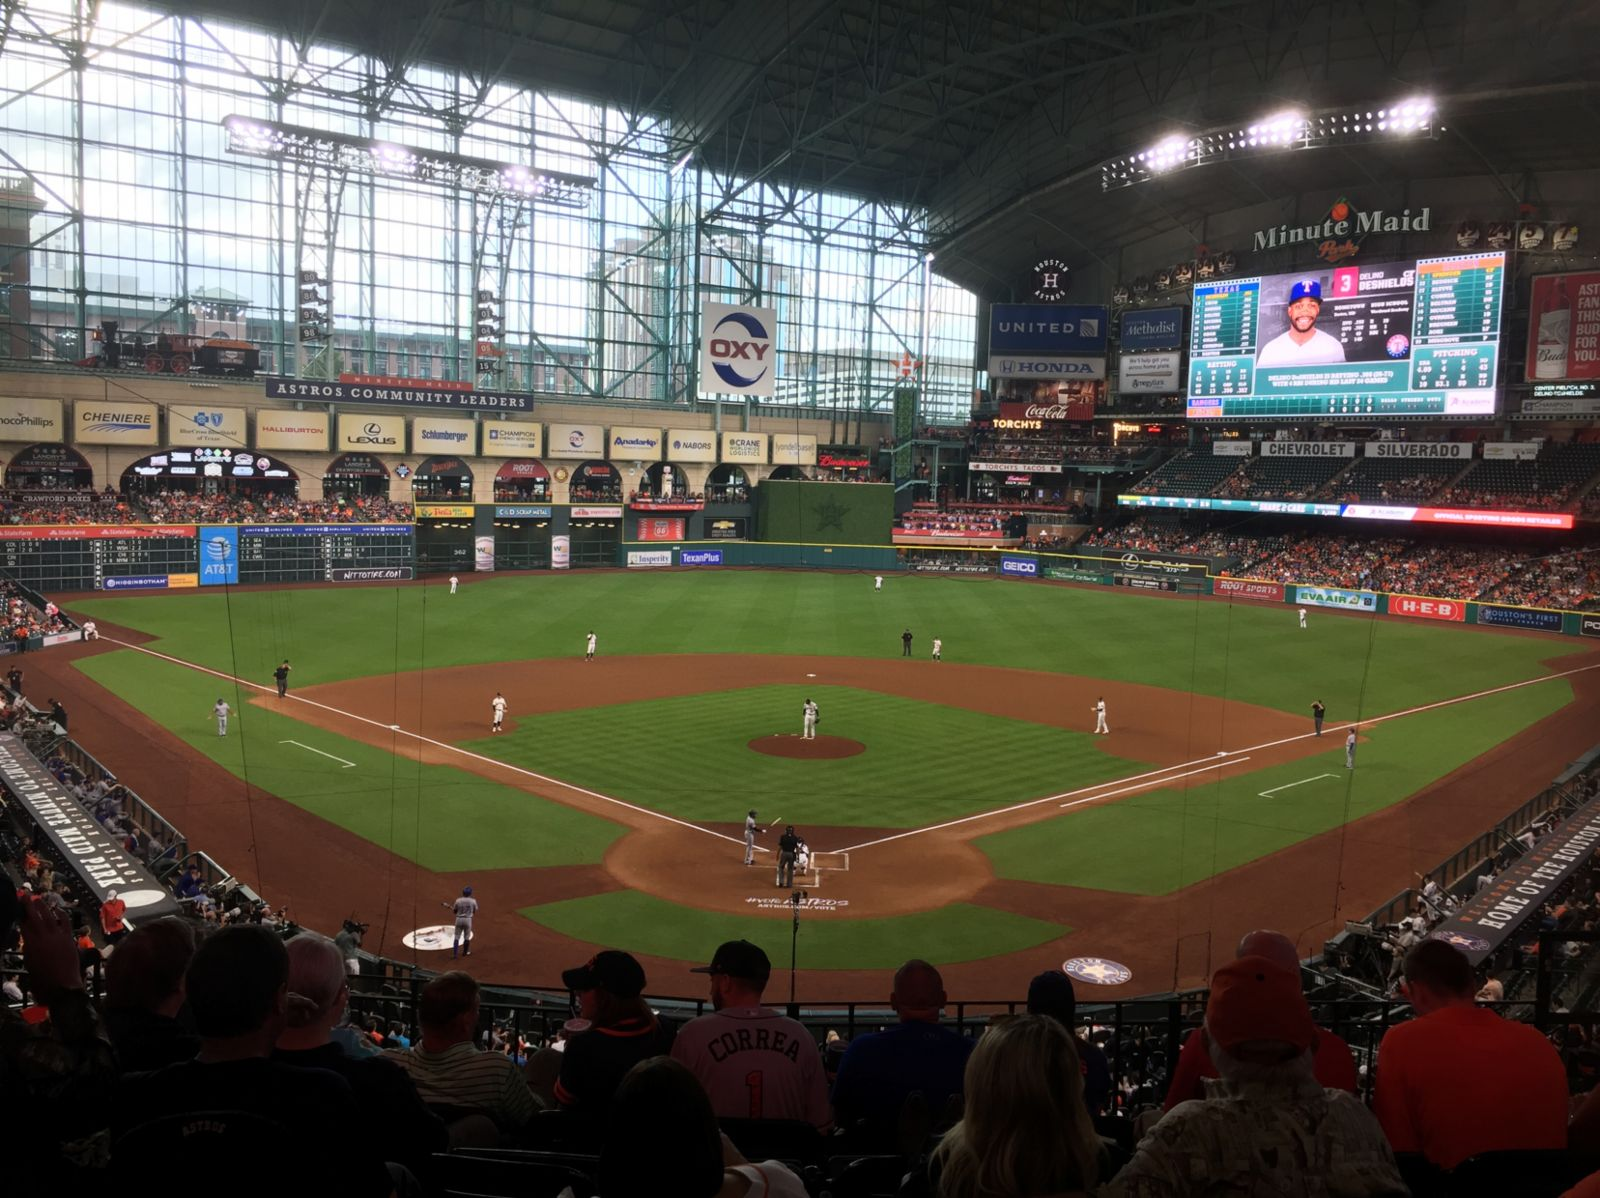 Seat View for Minute Maid Park Section 219, Row 6, Seat 9